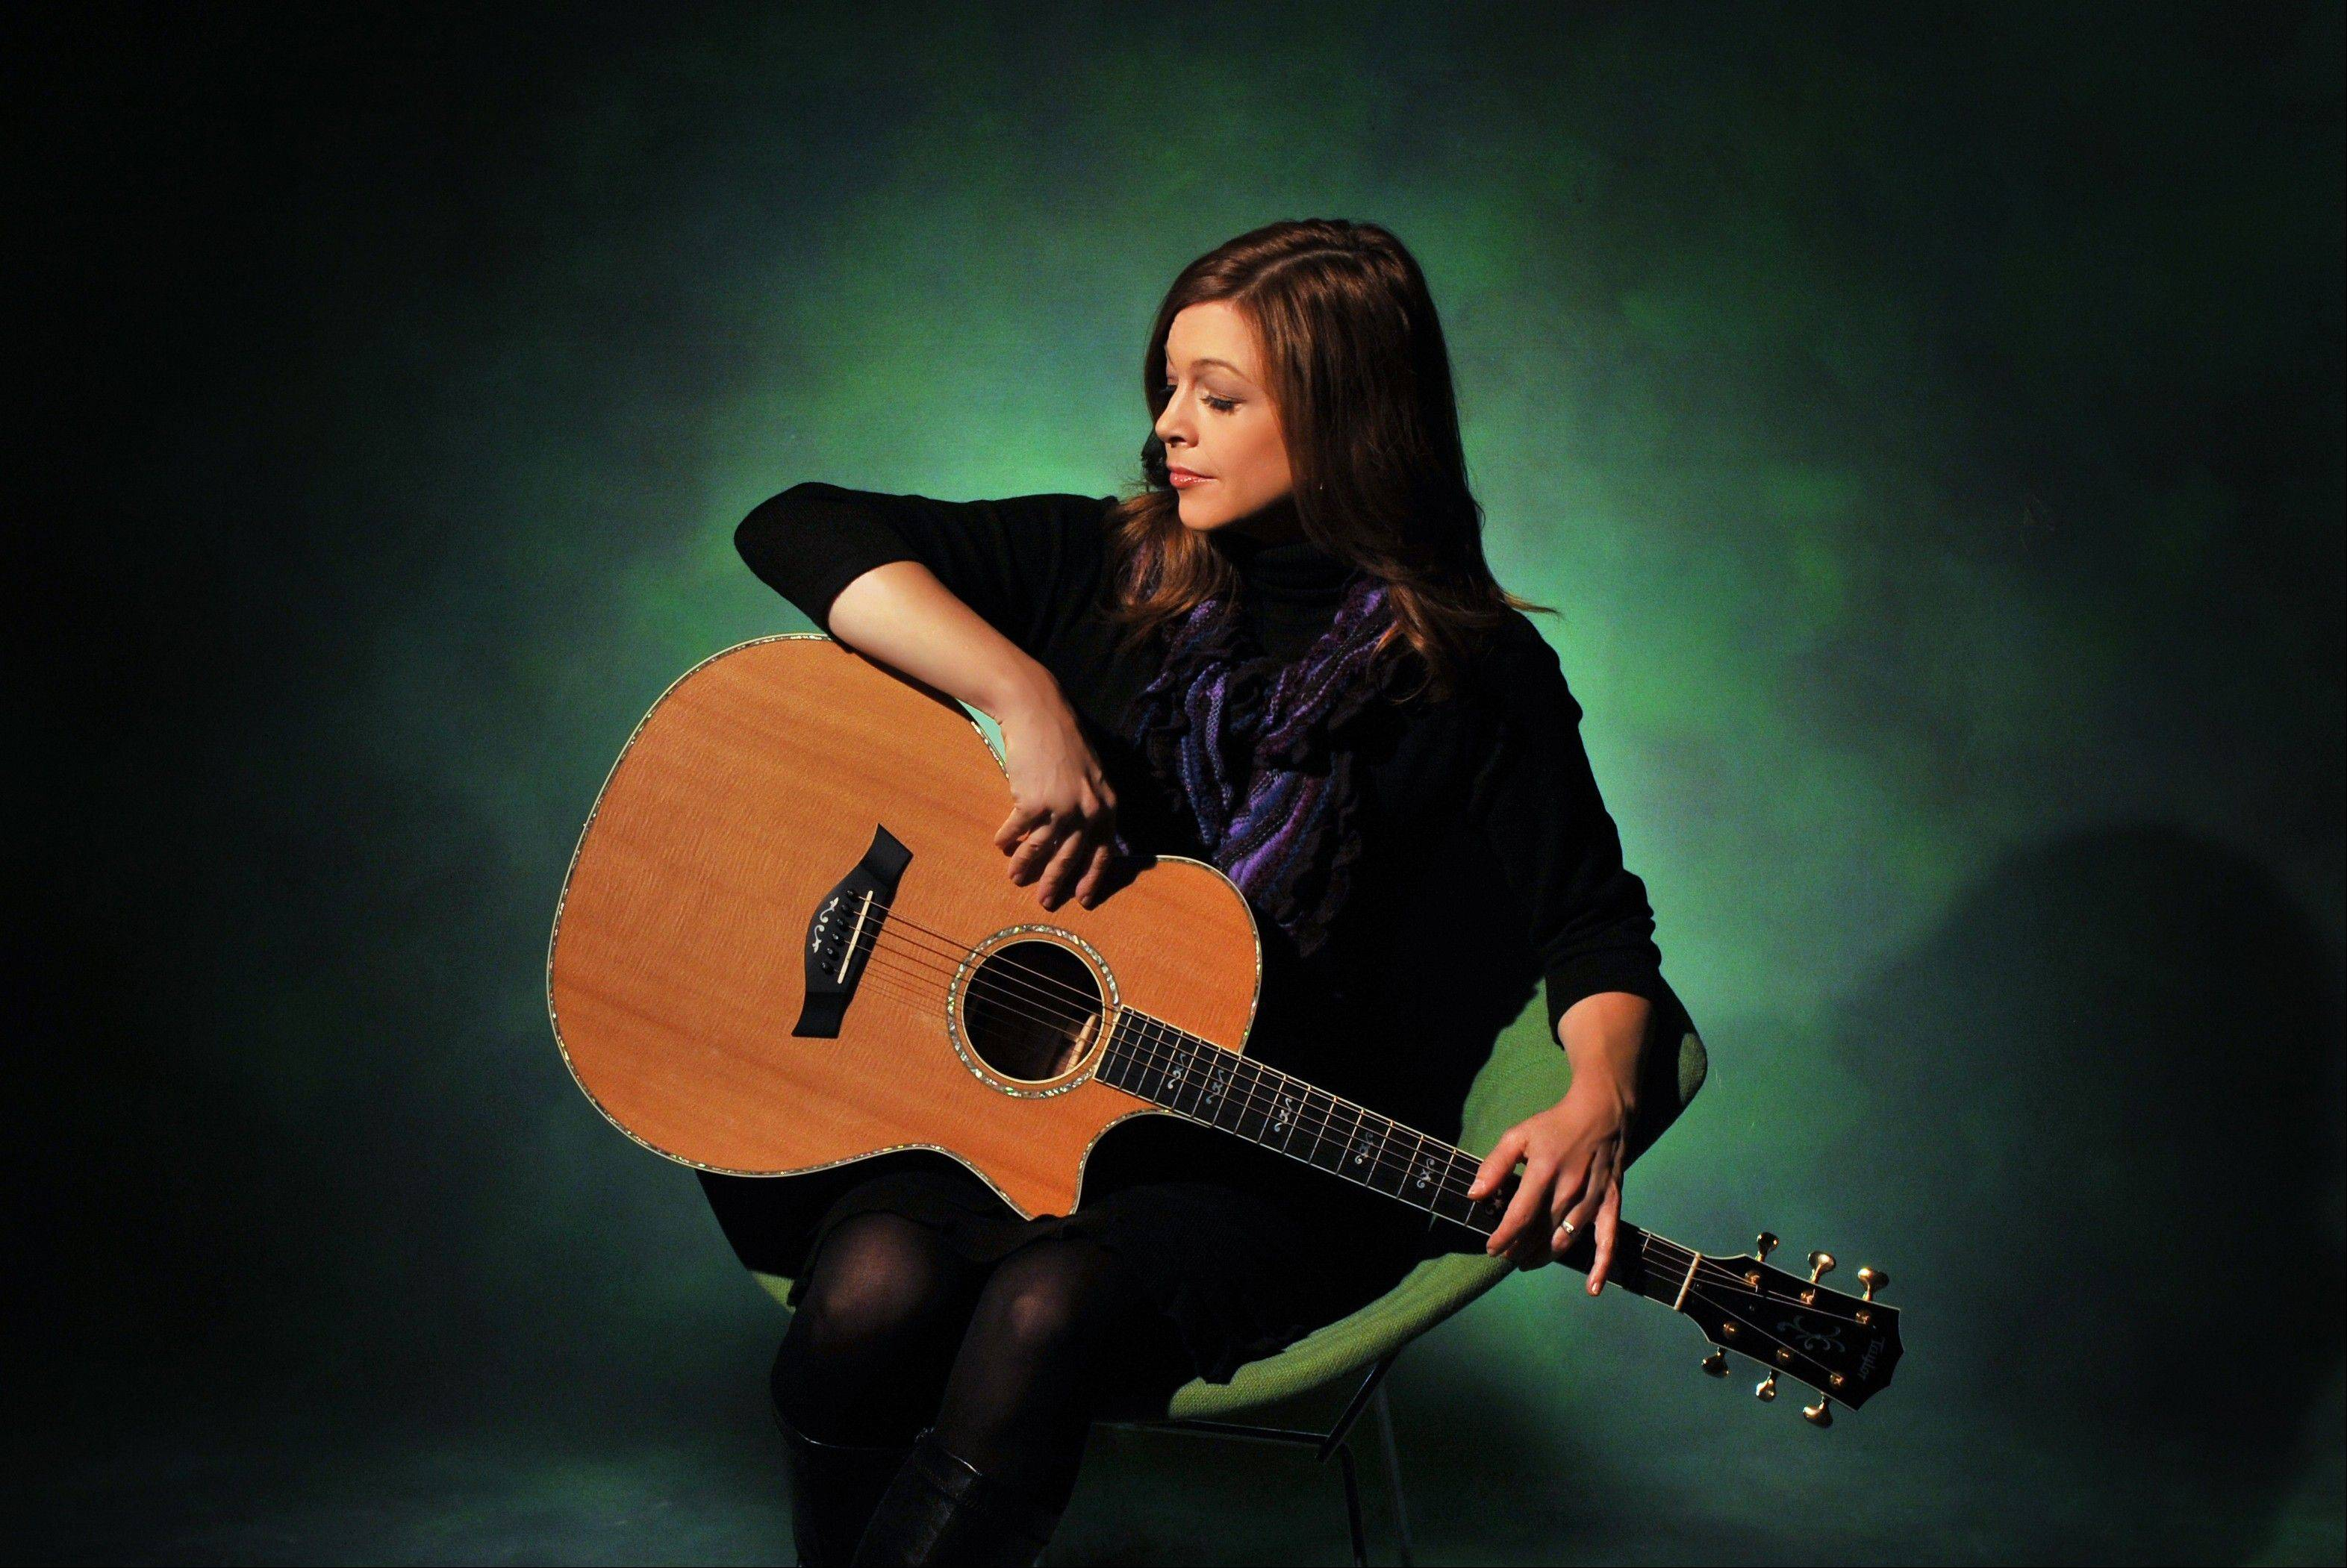 Singer/songwriter Carrie Newcomer presents a free concert Sunday in Long Grove's Fountain Square.